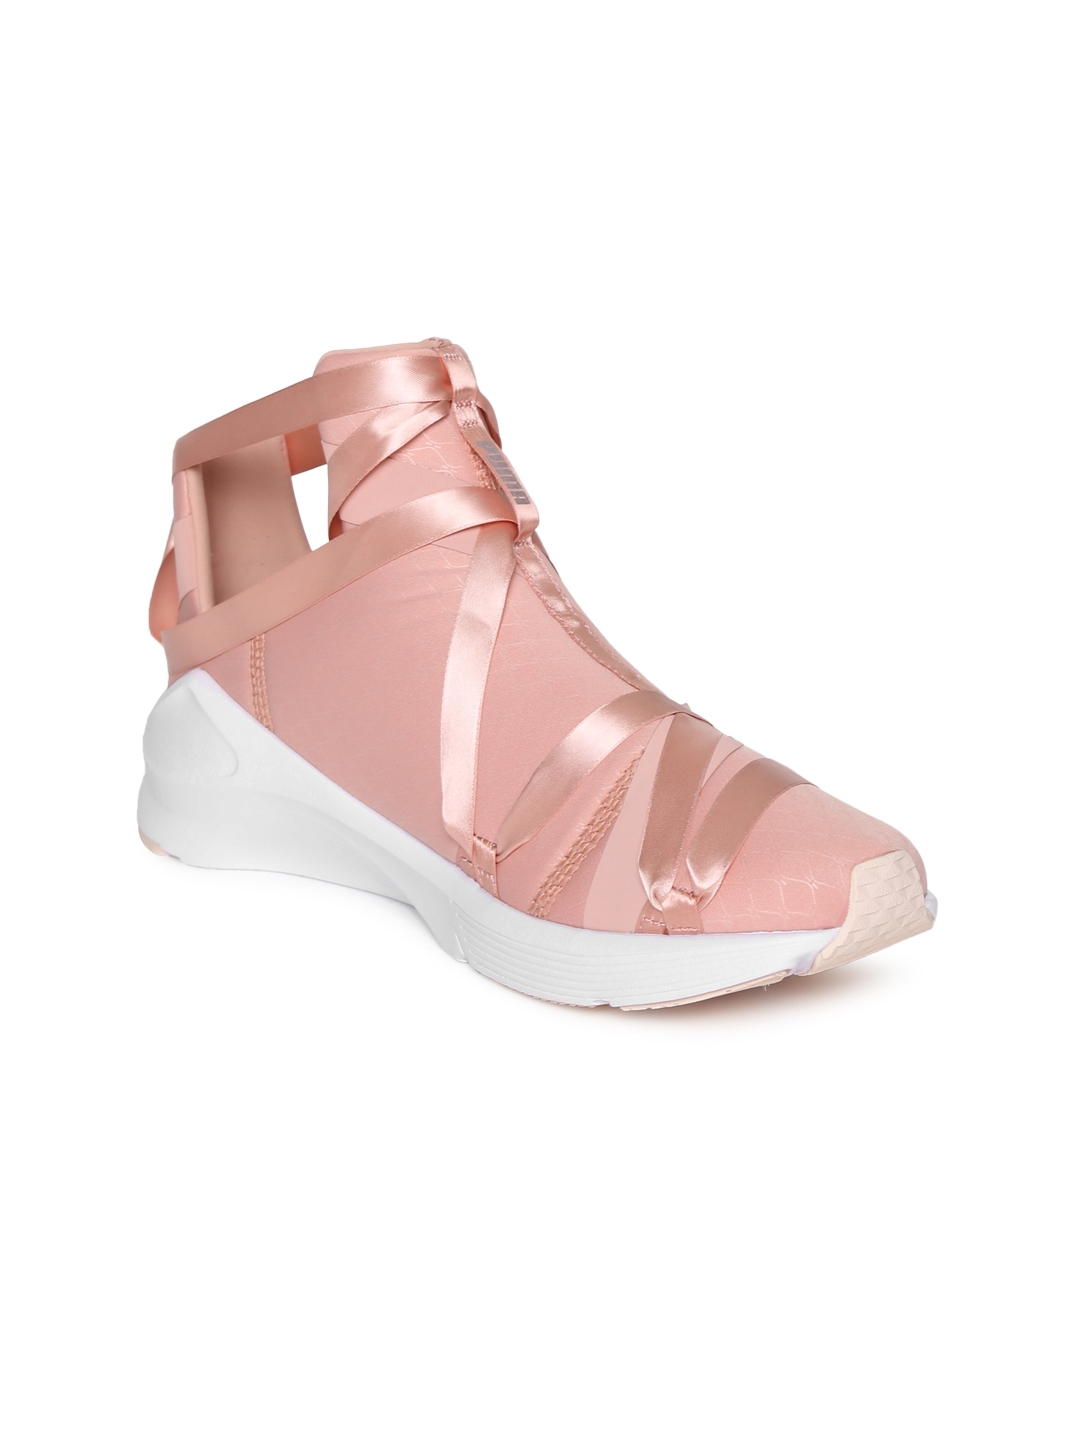 Buy Puma Women Pink Fierce Rope Satin EP Wn S Mid Top Running Shoes ... b74574c3d